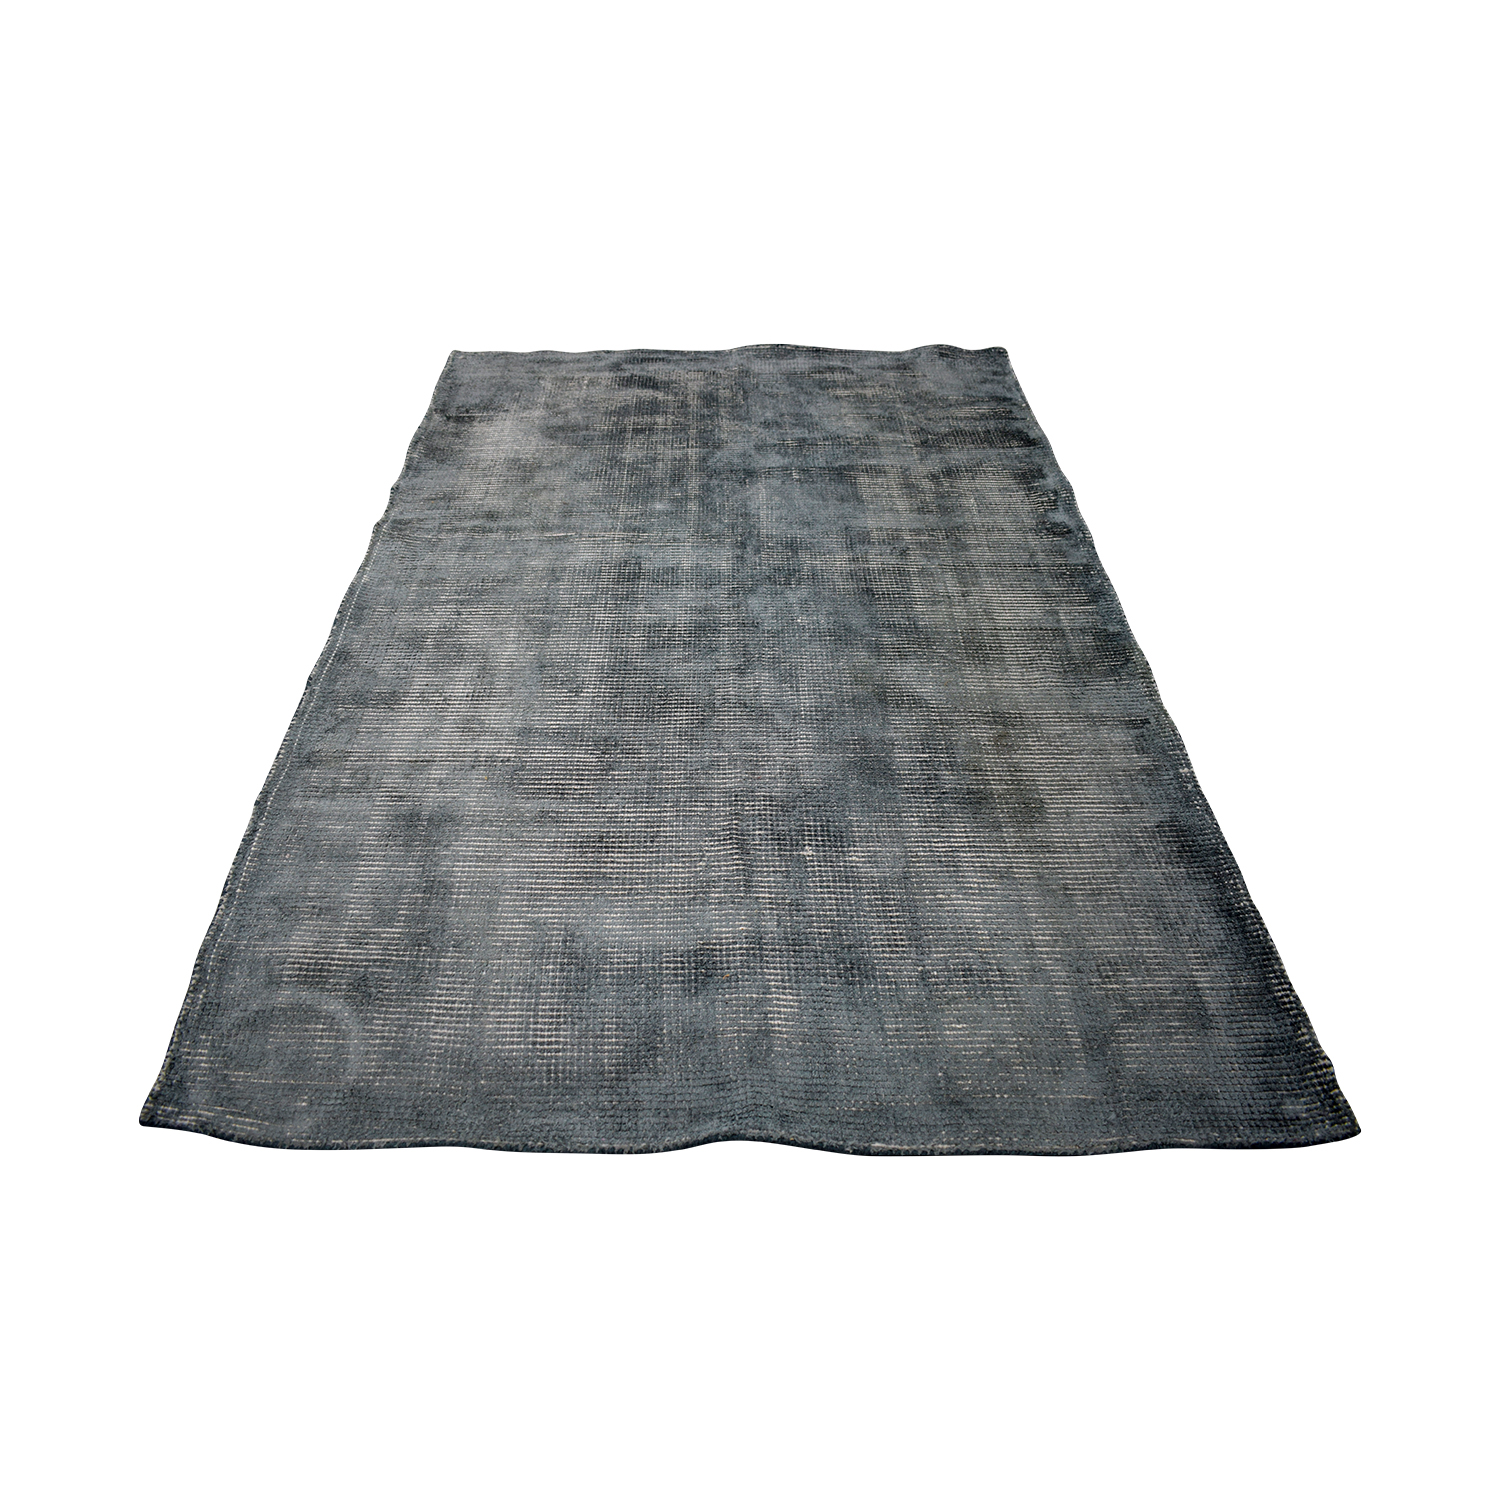 buy CB2 New Zealand Wool Scatter Grey Rug CB2 Sofas